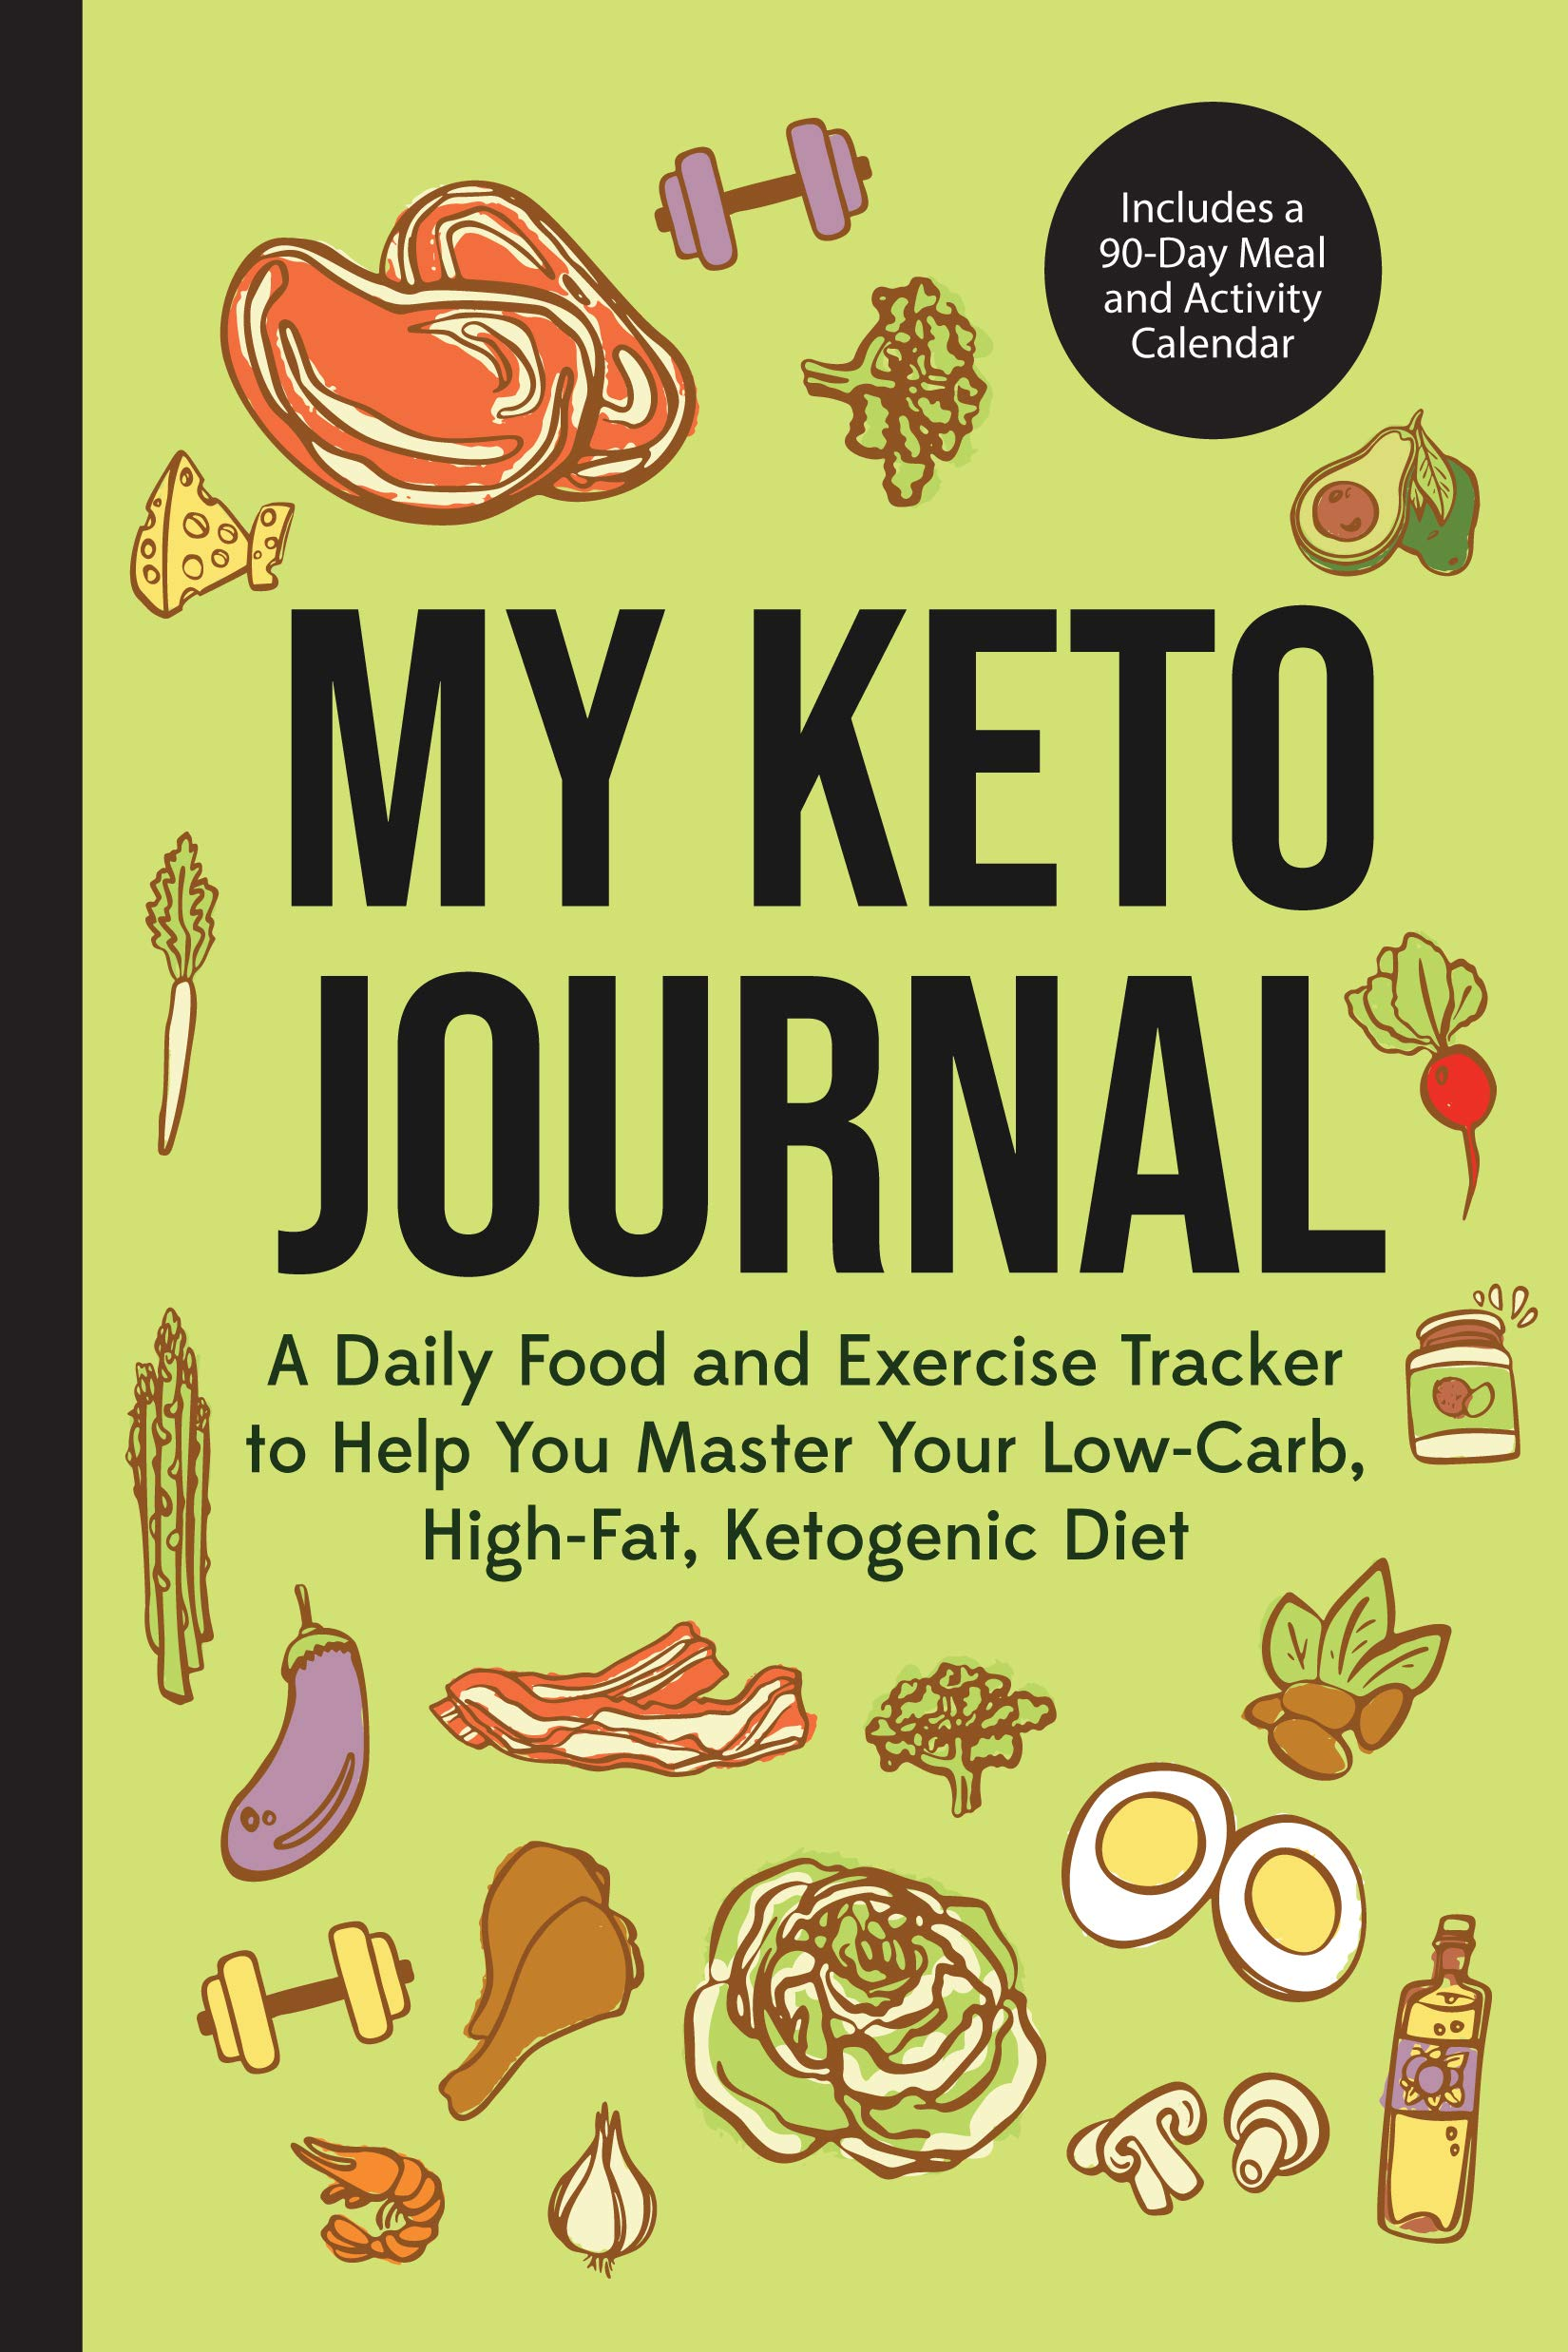 keto diet meal plan miami